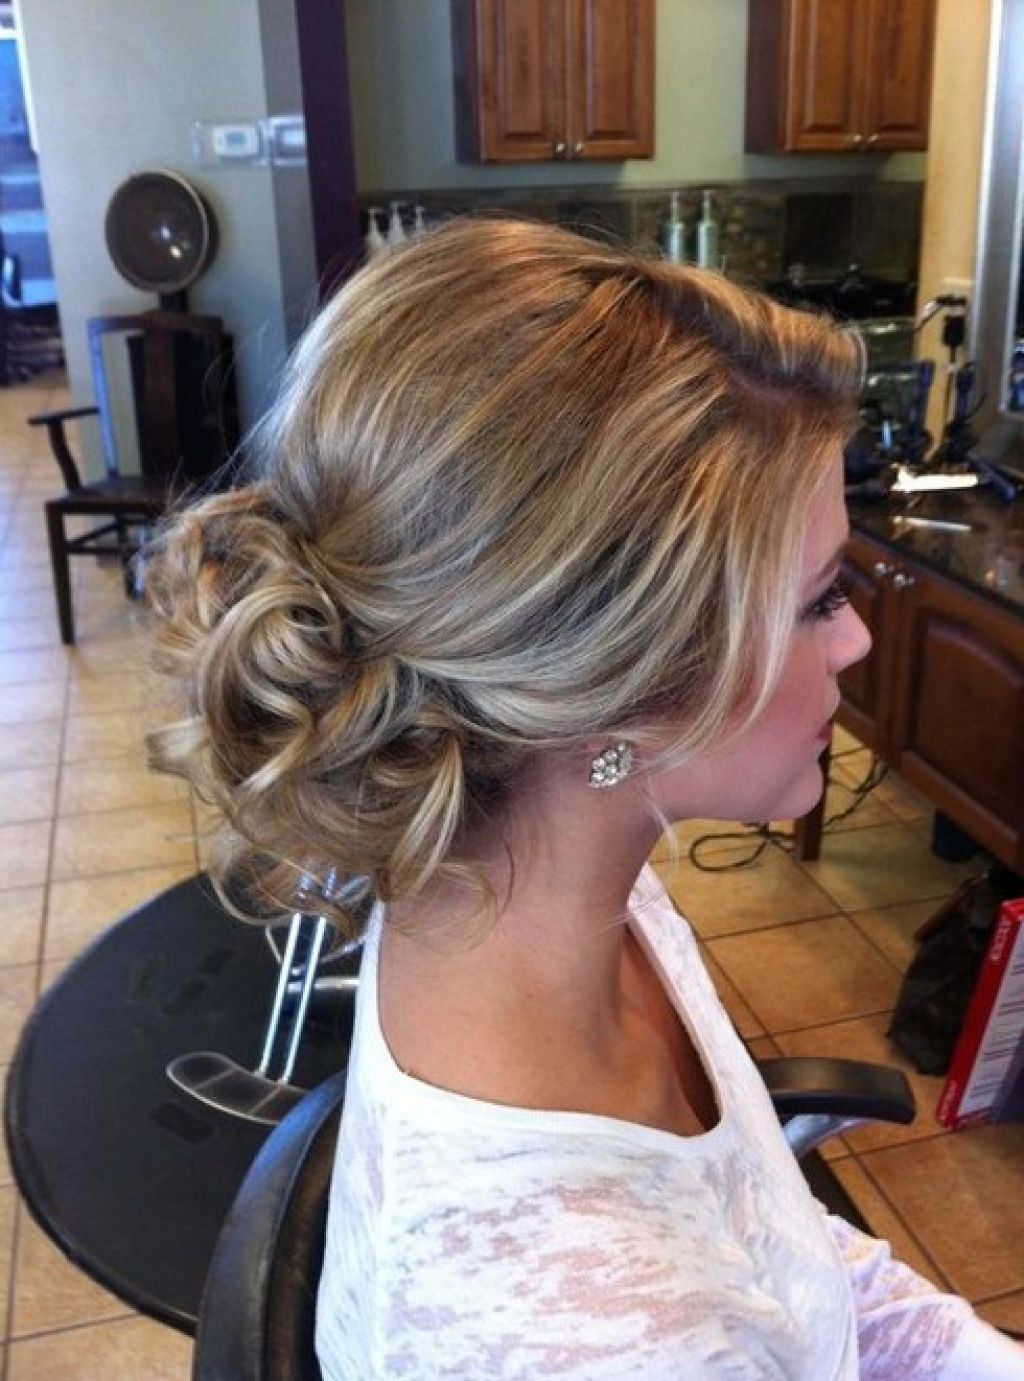 40 Quick And Easy Updos For Medium Hair Hairstyles Updo Updohairstyles Easyhairupdos Easy H Easy Updos For Medium Hair Medium Hair Styles Easy Hair Updos